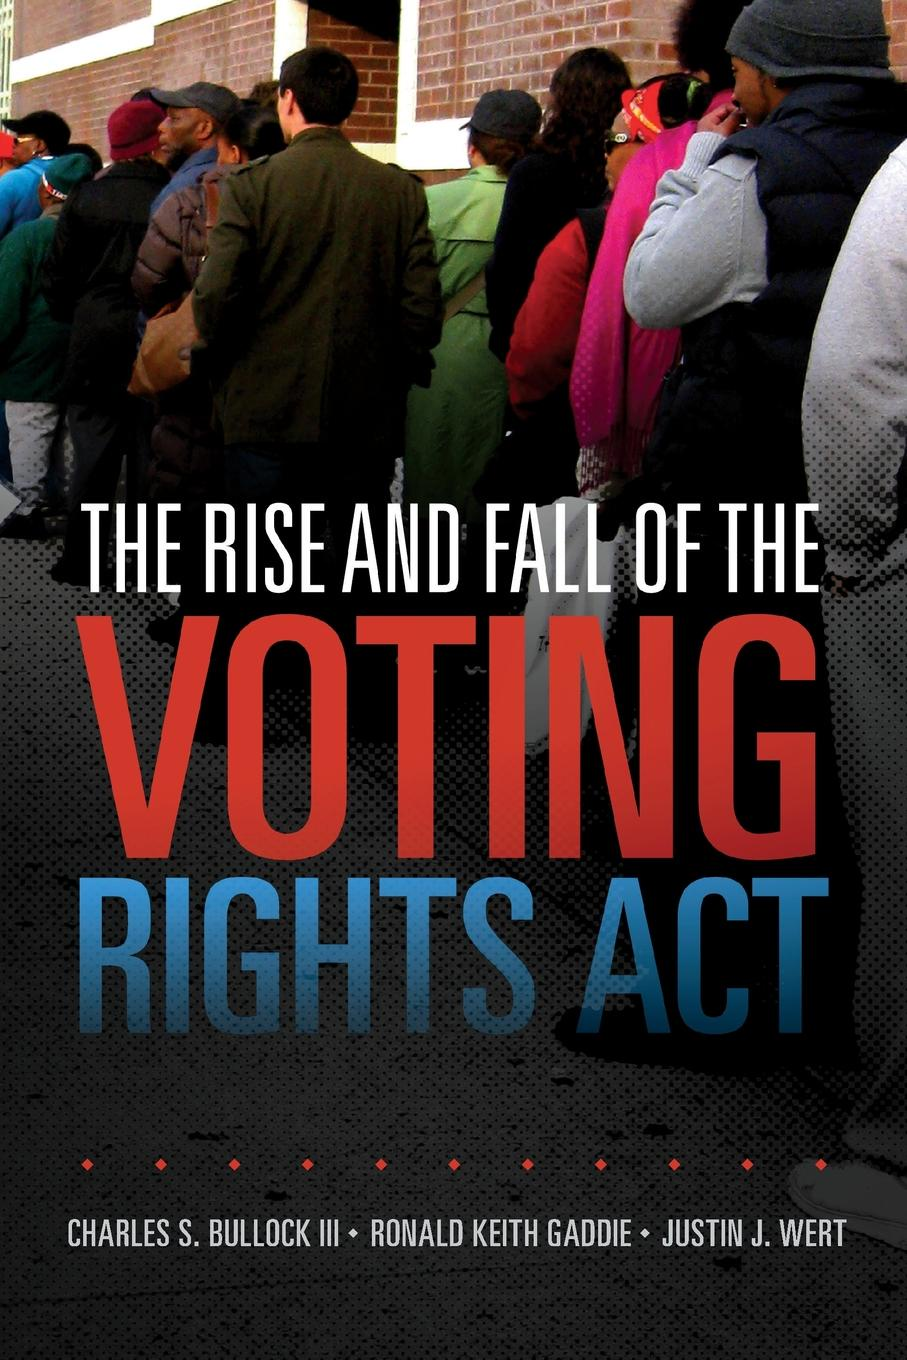 Charles S. Bullock III, Ronald Keith Gaddie, Justin J. Wert The Rise and Fall of the Voting Rights Act sarah musau a distant dream exploring the impact of women rights on tanzania s development